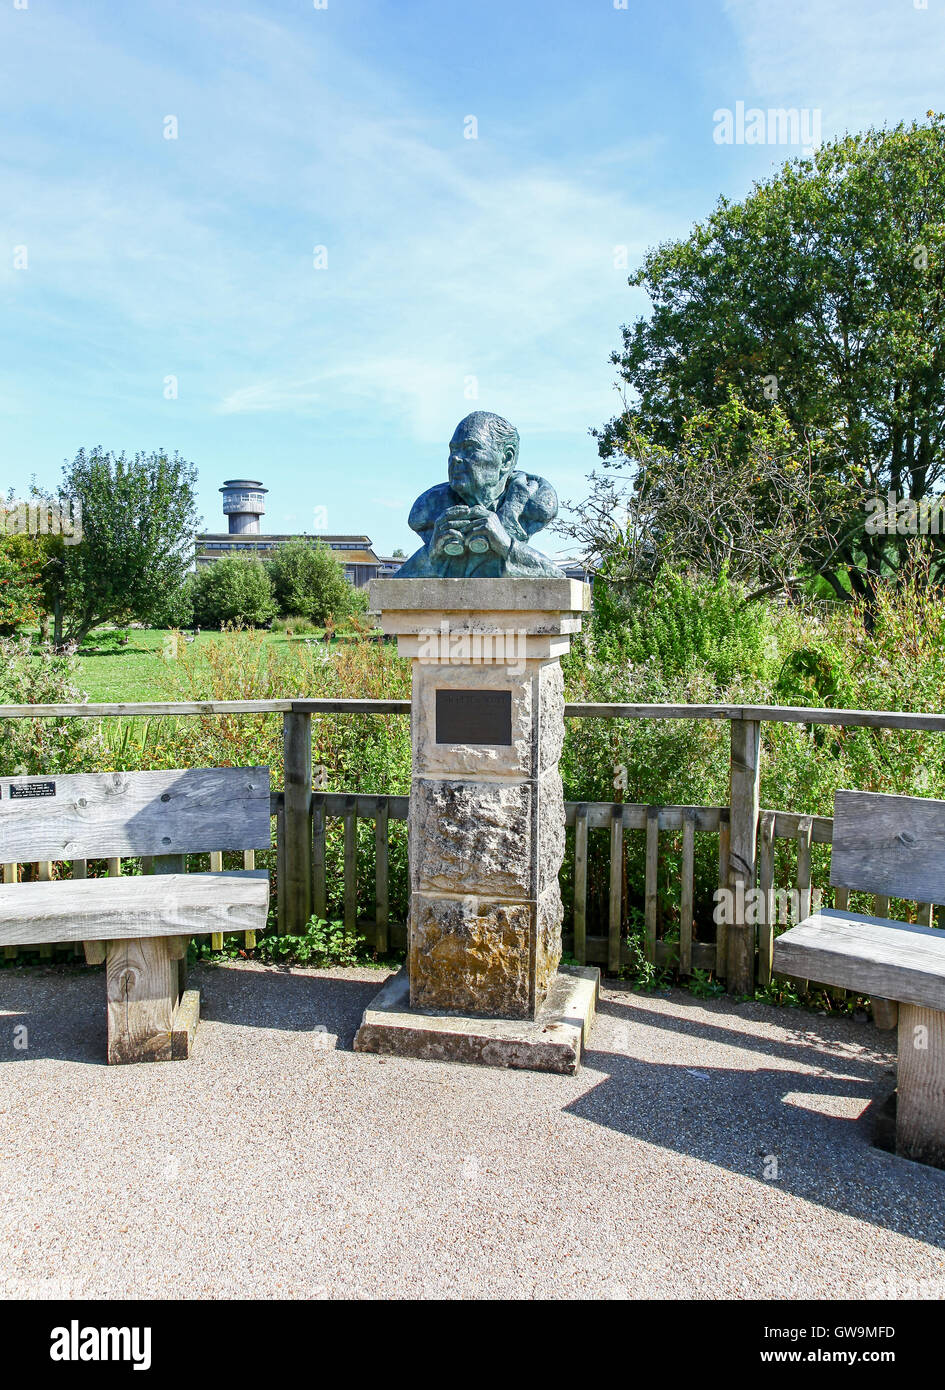 A bust of founder Sir Peter Scott by Jacqueline Shackleton on display  at the Slimbridge Wetland Centre Gloustershire Stock Photo